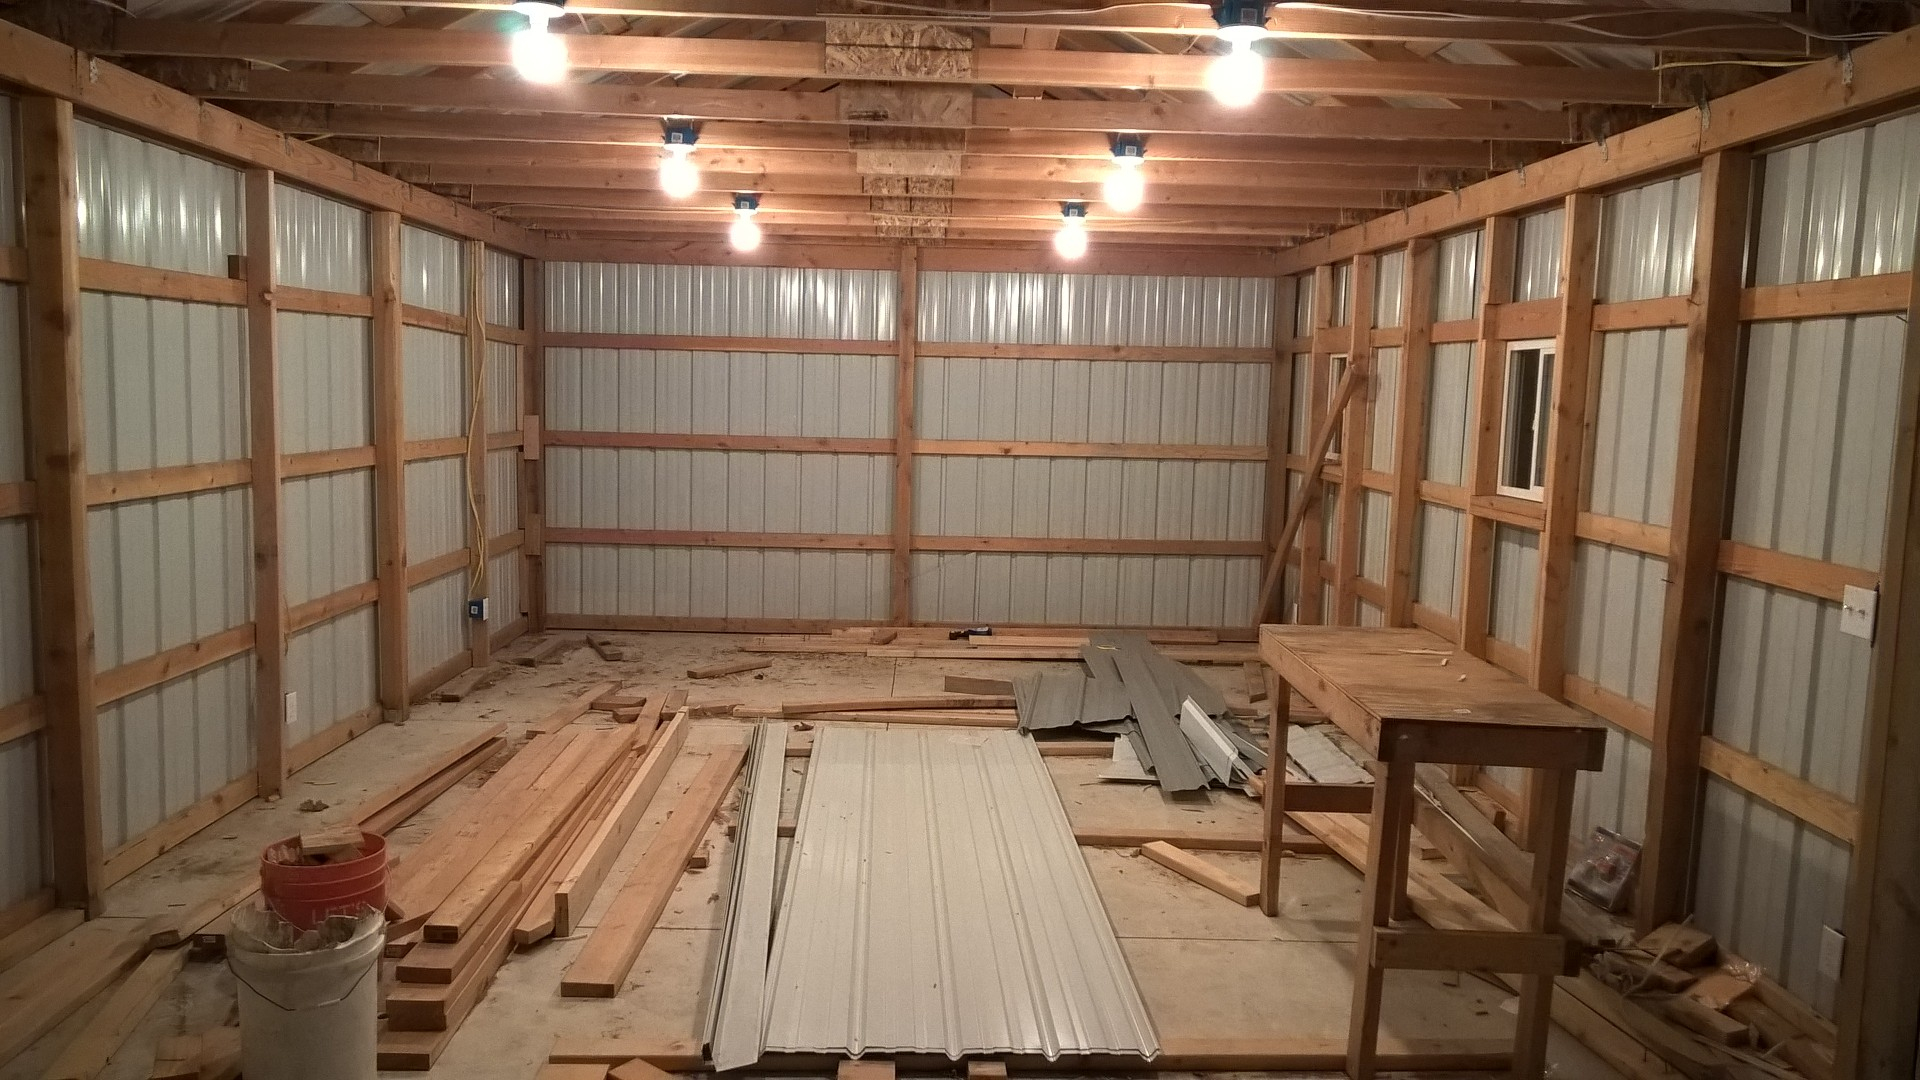 Building A Pole Barn Shed From Scratch P4 – Planning Pole Barn - Pole Barn Wiring Diagram